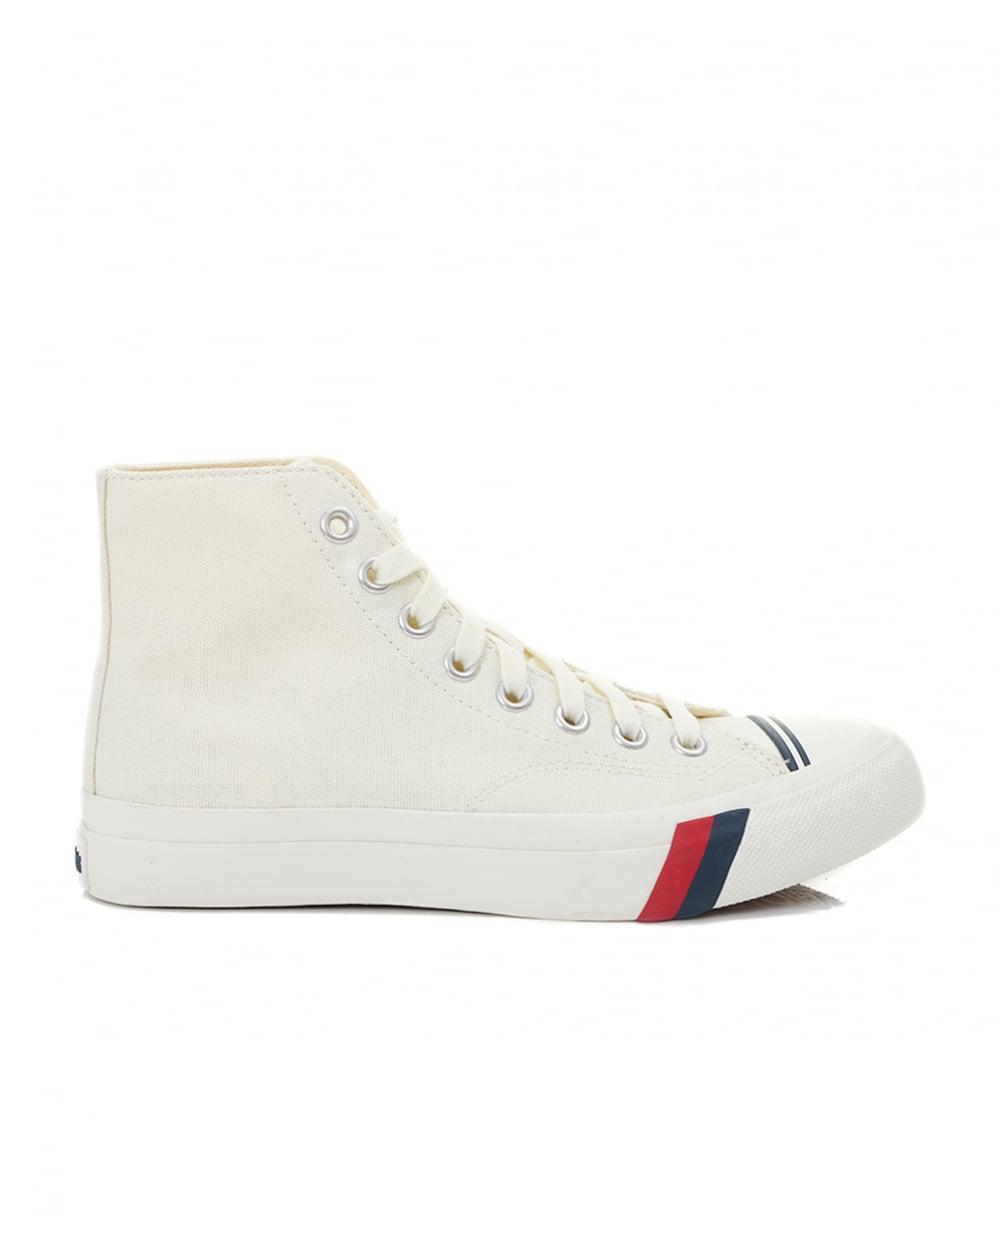 converse jack purcell pro keds